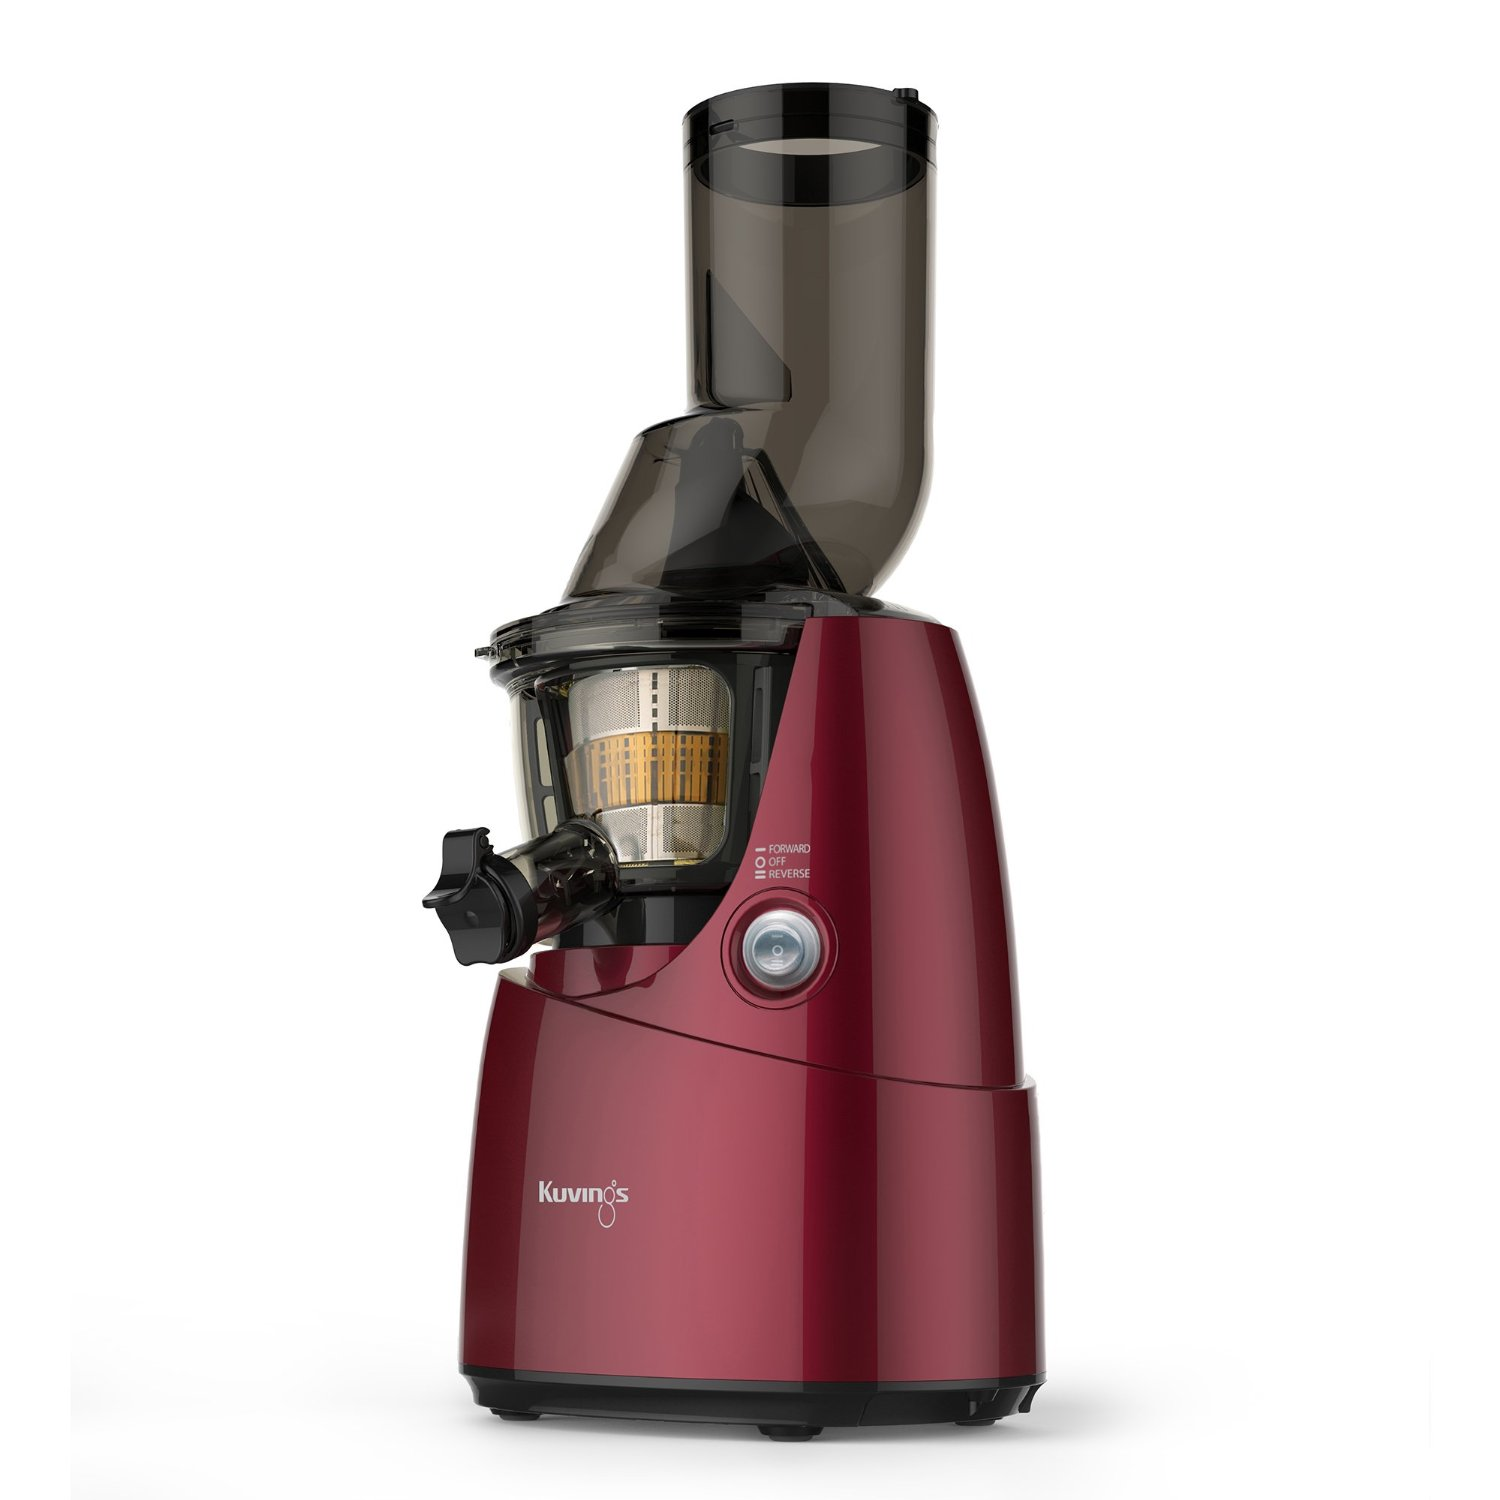 Kuvings Silent Slow Juicer Review : Kuvings B6000 Upright Slow Silent Masticating Juicer Review